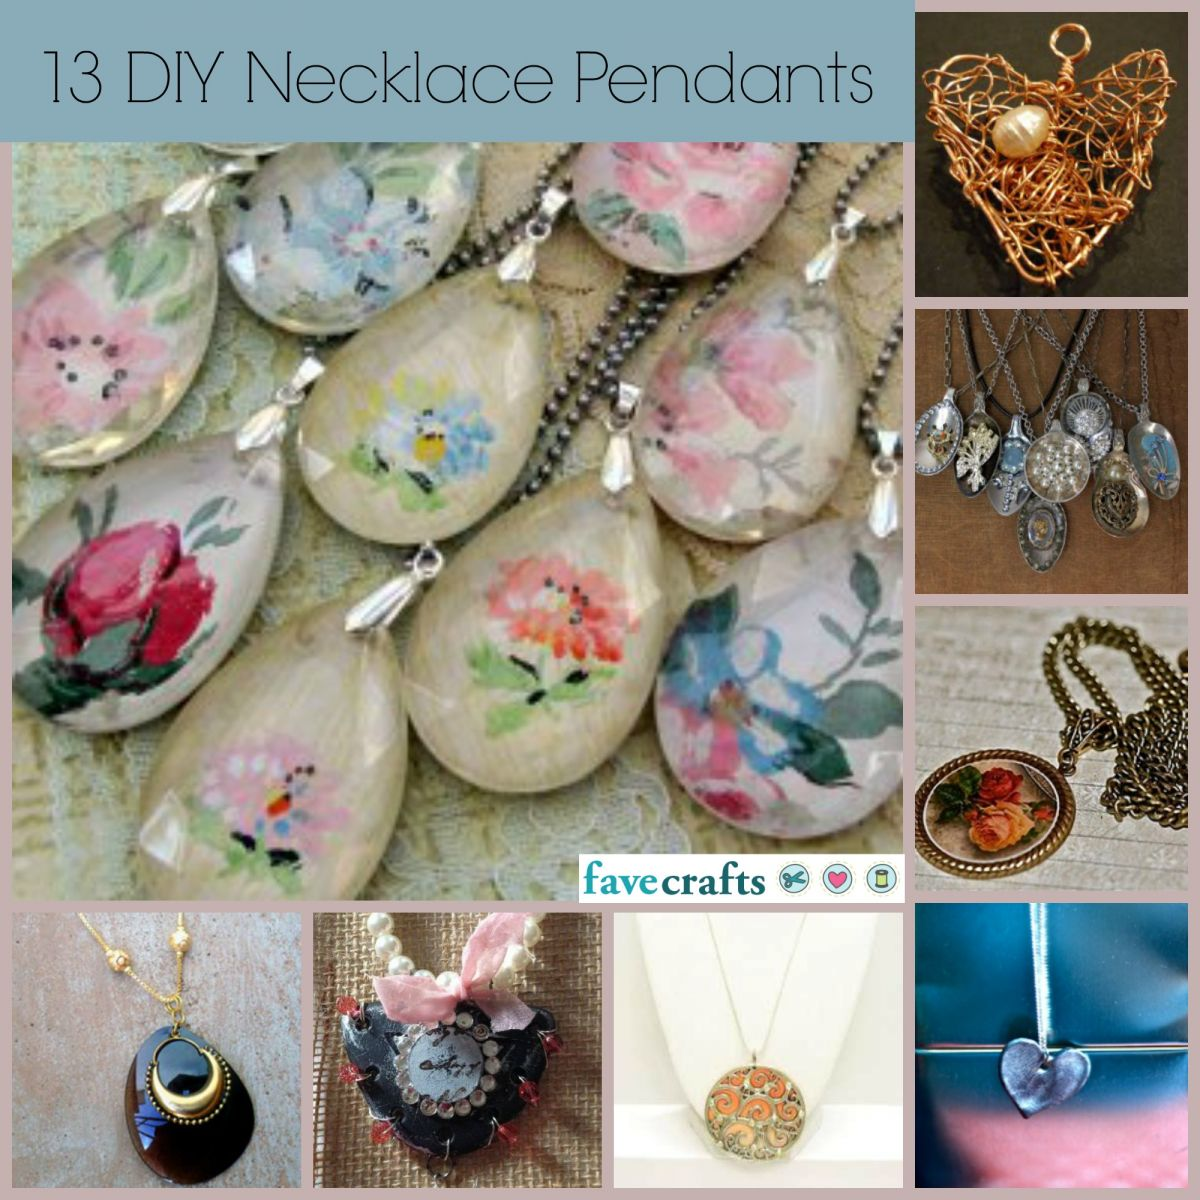 13 DIY Necklace Pendants